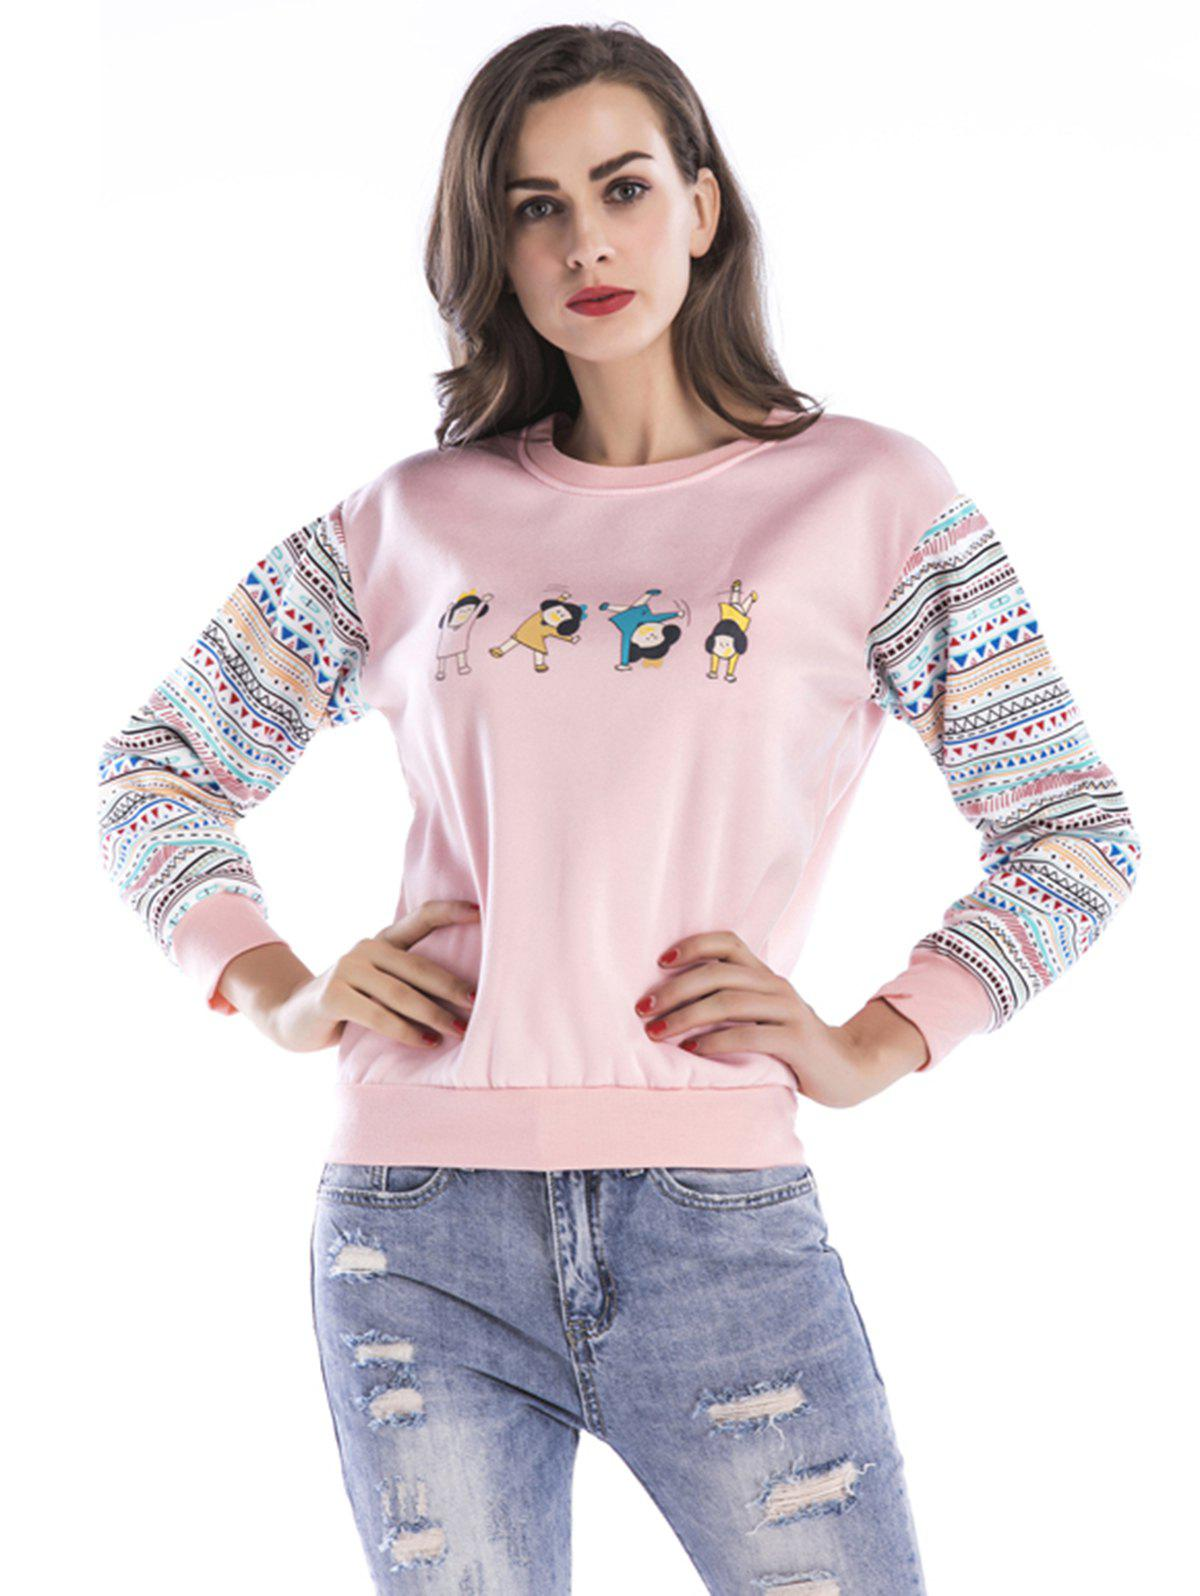 Shops Women Fashion Floral Splice Long Sleeve Blouse Top Pullover Casual Christmas T Shirt